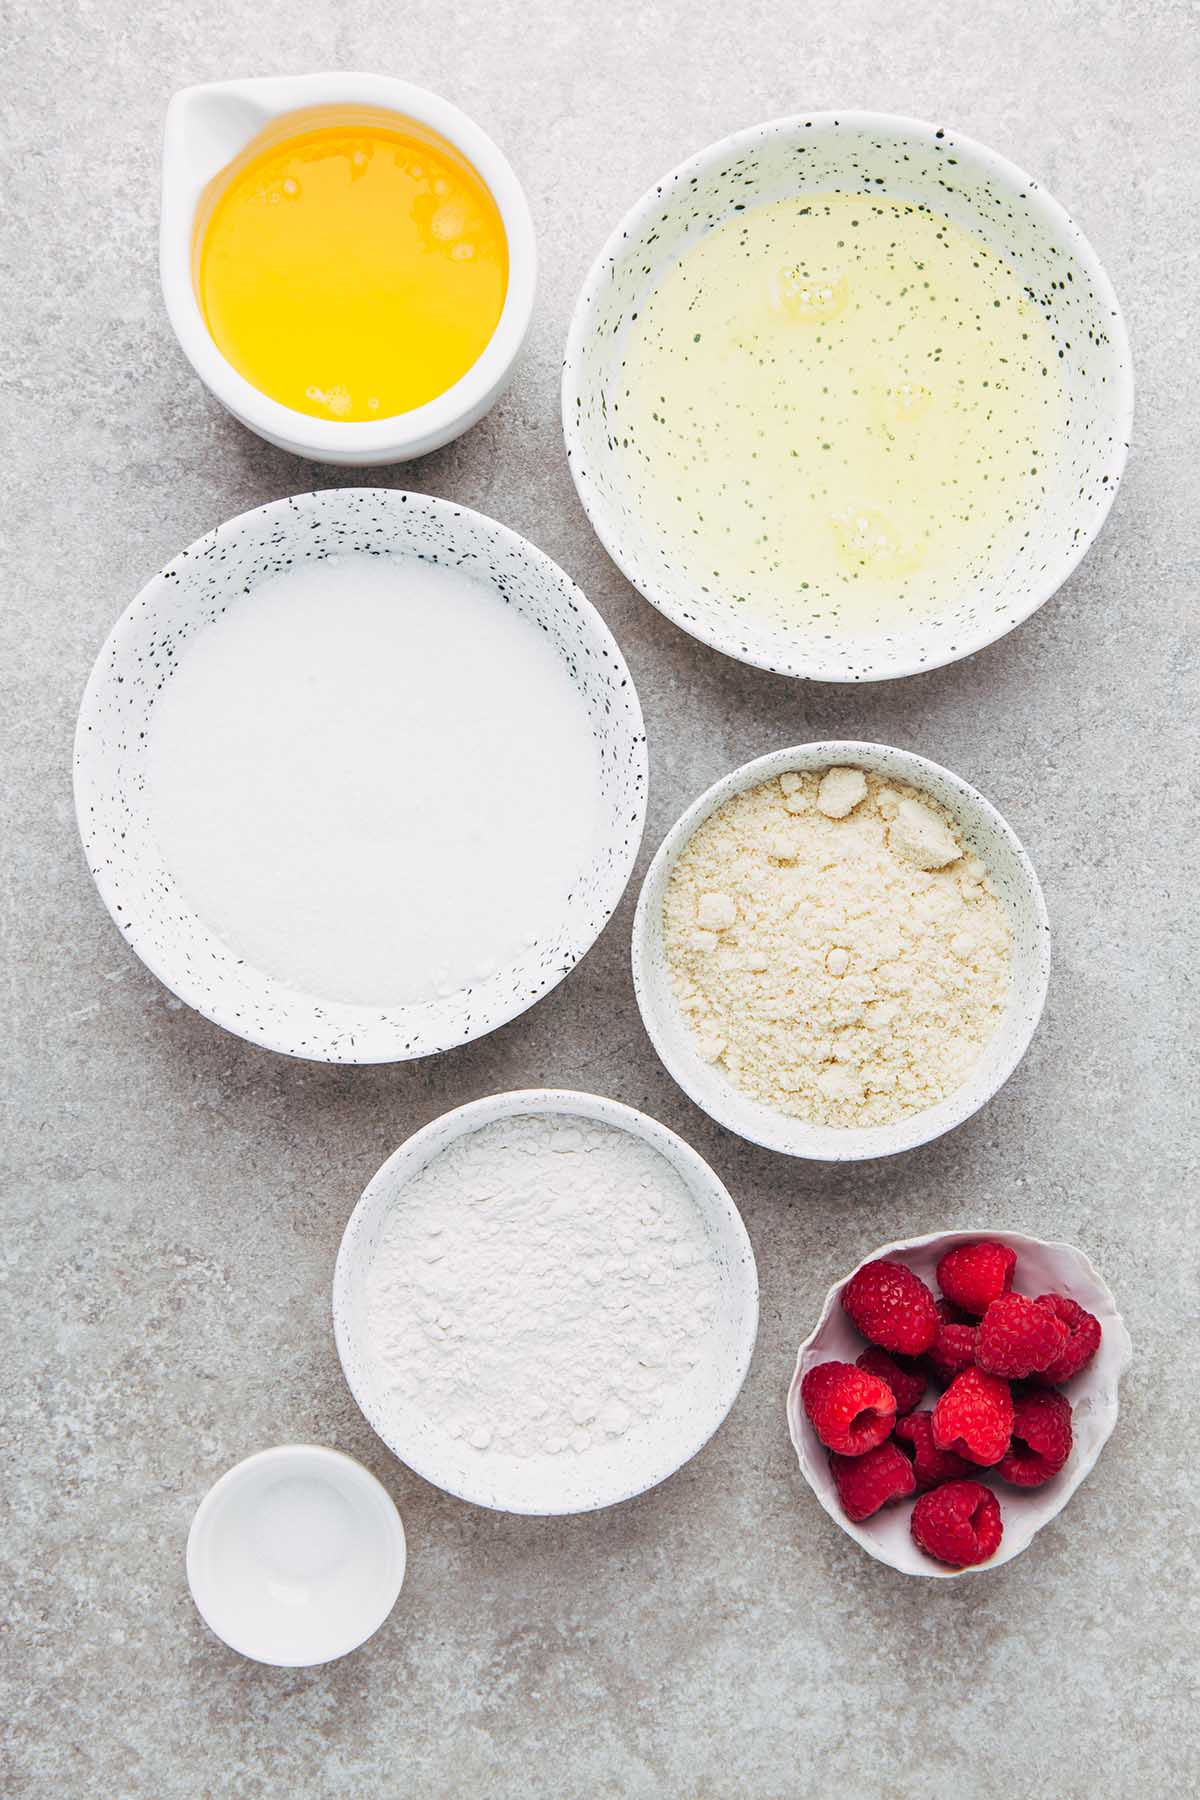 Raspberry financier ingredients in a flat lay.